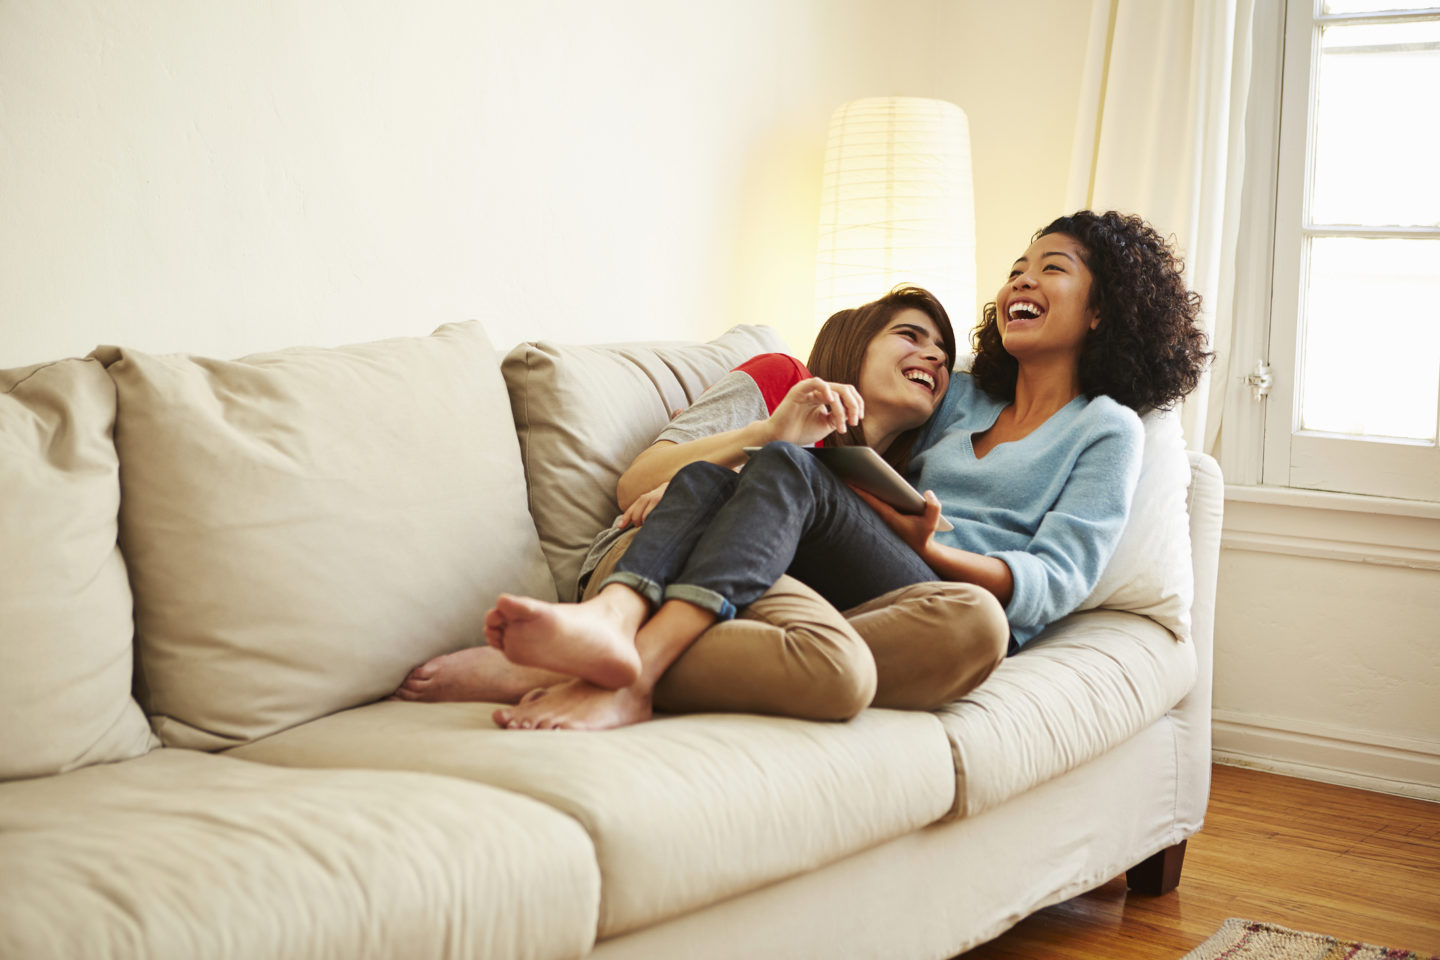 Caucasian Pregnant Lesbian Couple Relaxing On Sofa Stock Image